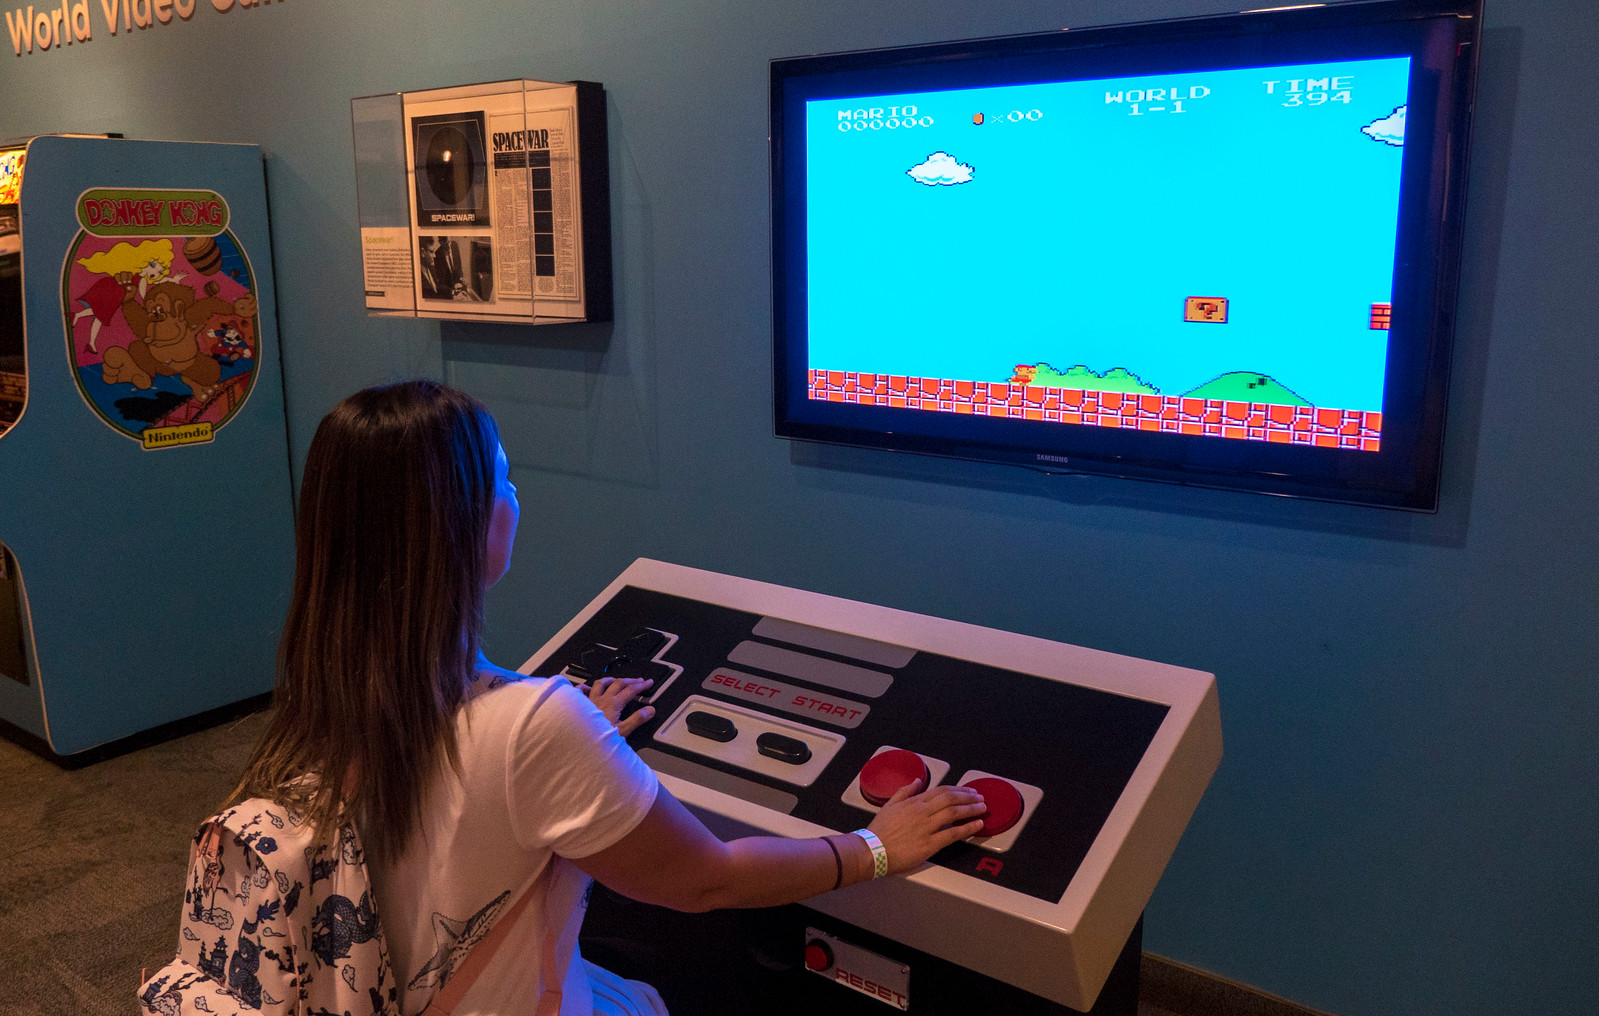 Gigantic Nintendo controller to play Super Mario Bros on NES at the Strong Museum